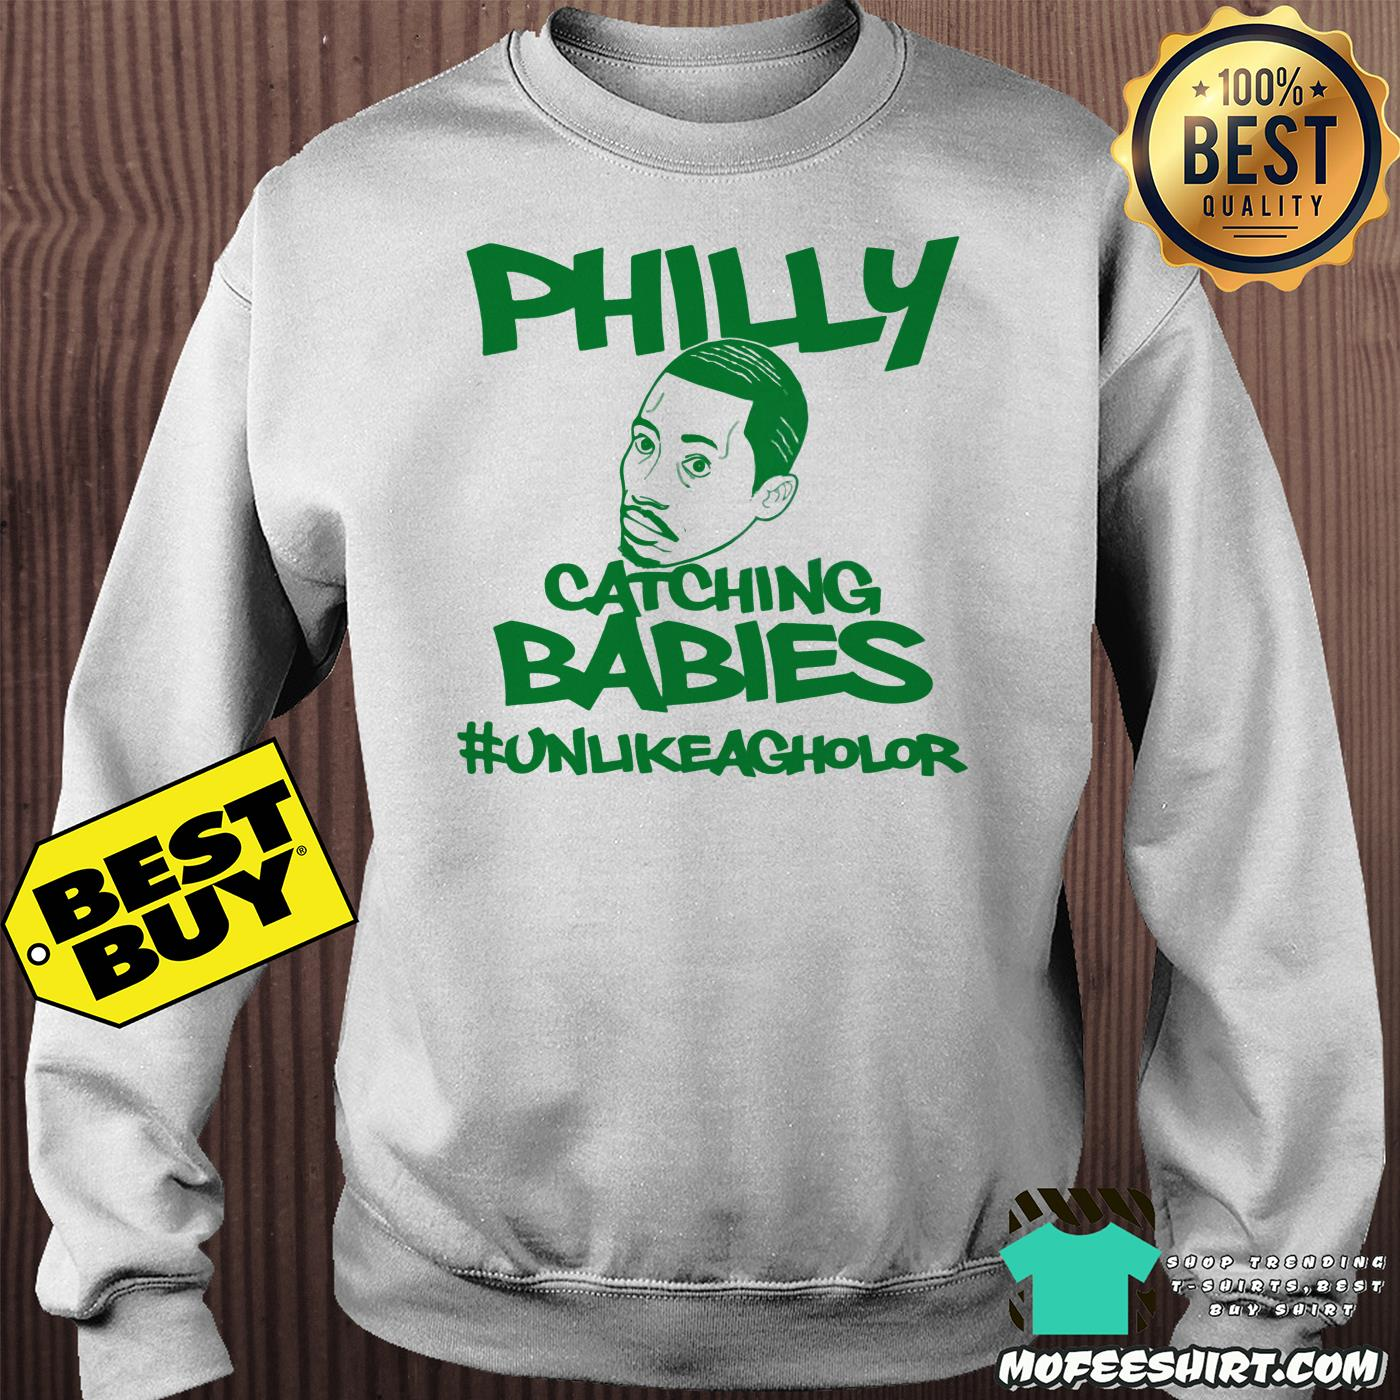 philly catching babies unlike agholor sweatshirt - Philly Catching Babies Unlike Agholor shirt